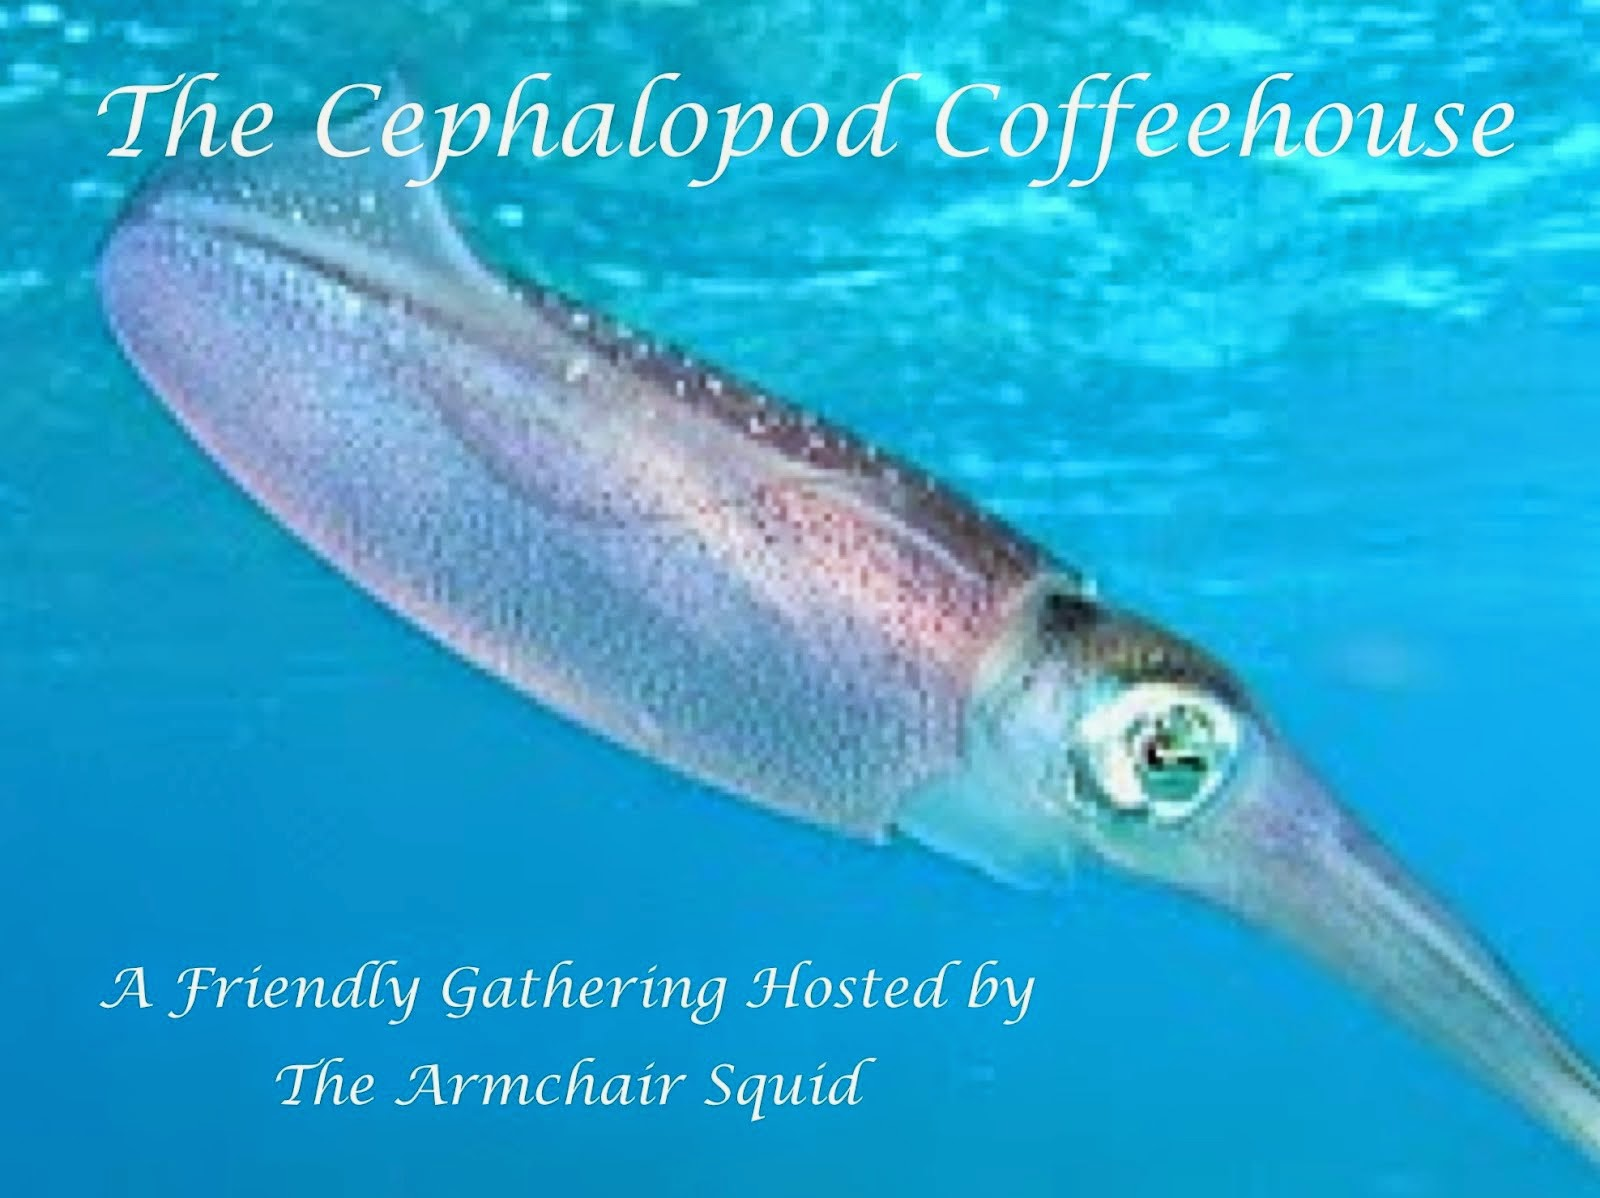 The Cephalopod Coffeehouse - December 29th